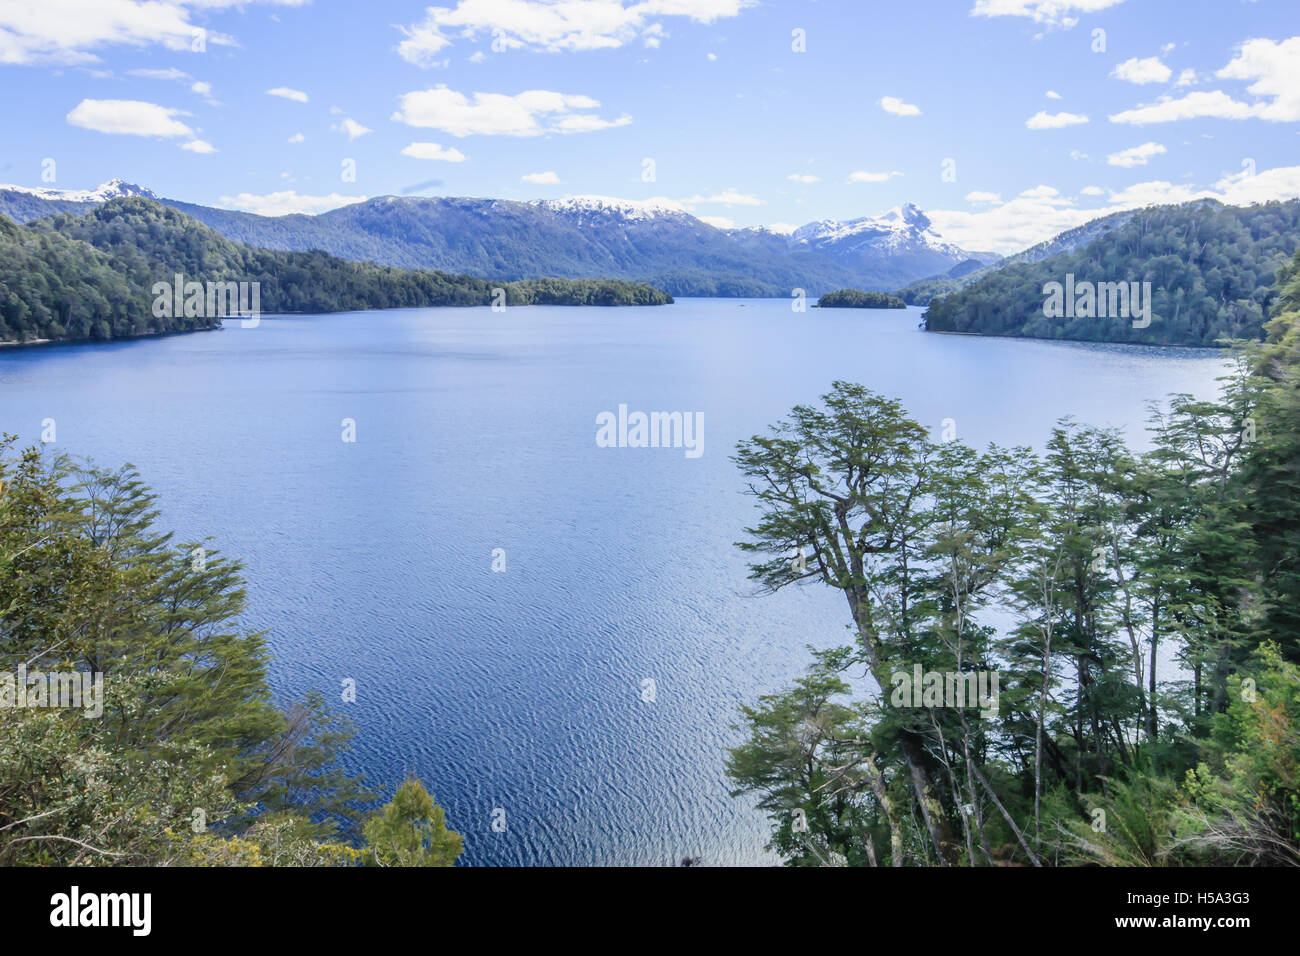 Scenic View in San Martin De Los Andes, Patagonia, Argentina Stock Photo